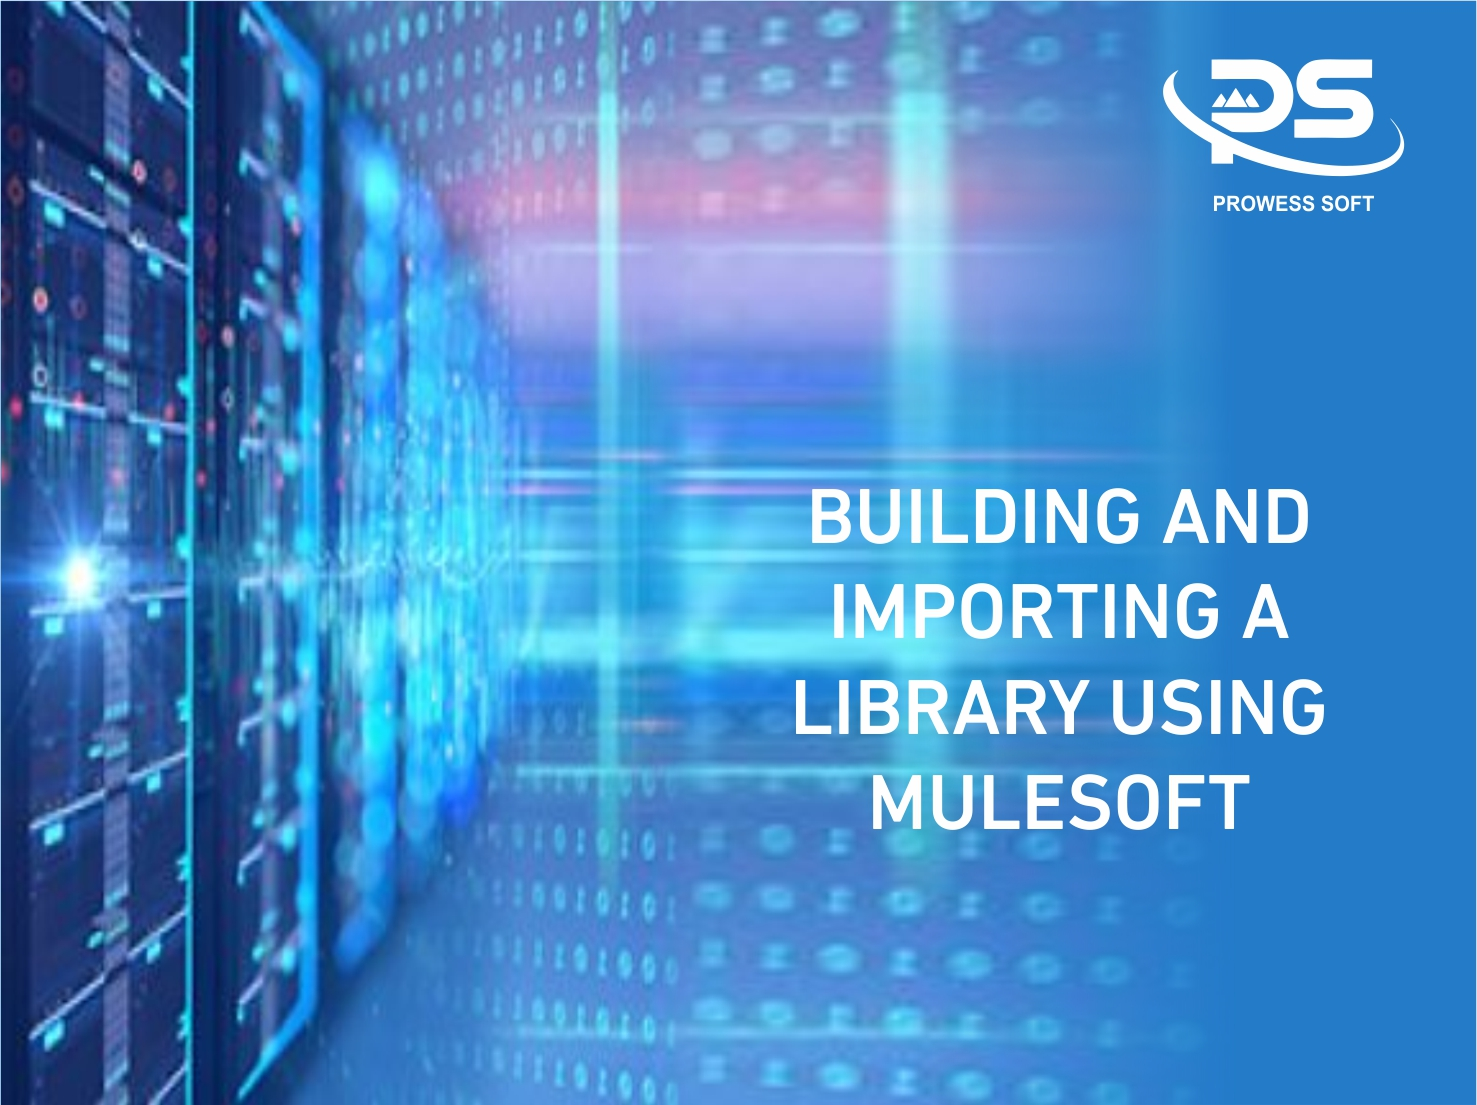 Image Of Building and Importing a library using MuleSoft